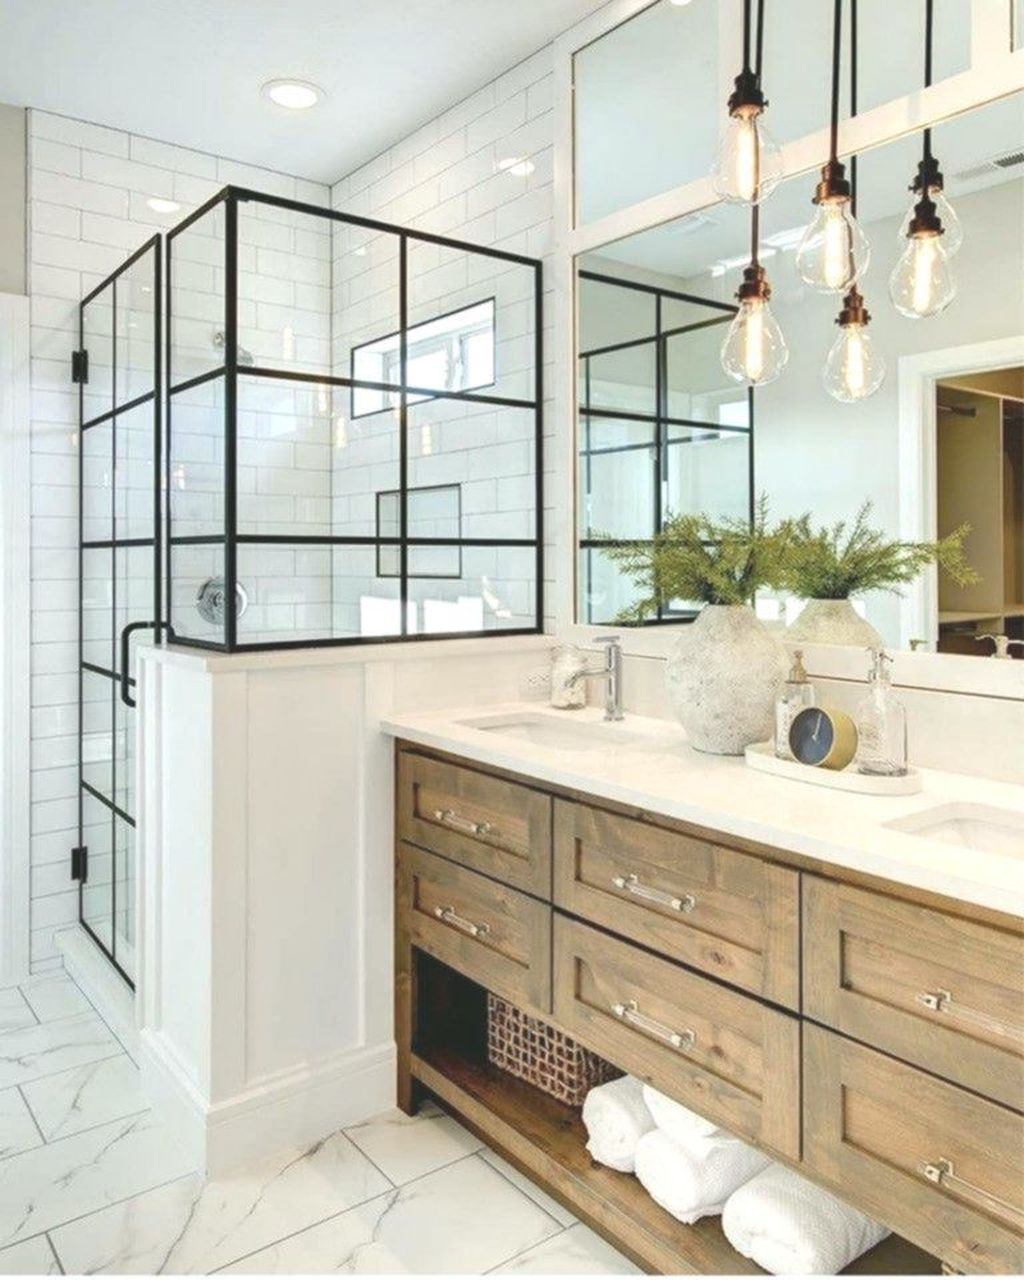 Amazing White Tile Bathroom Design Ideas Looks Elegant 19